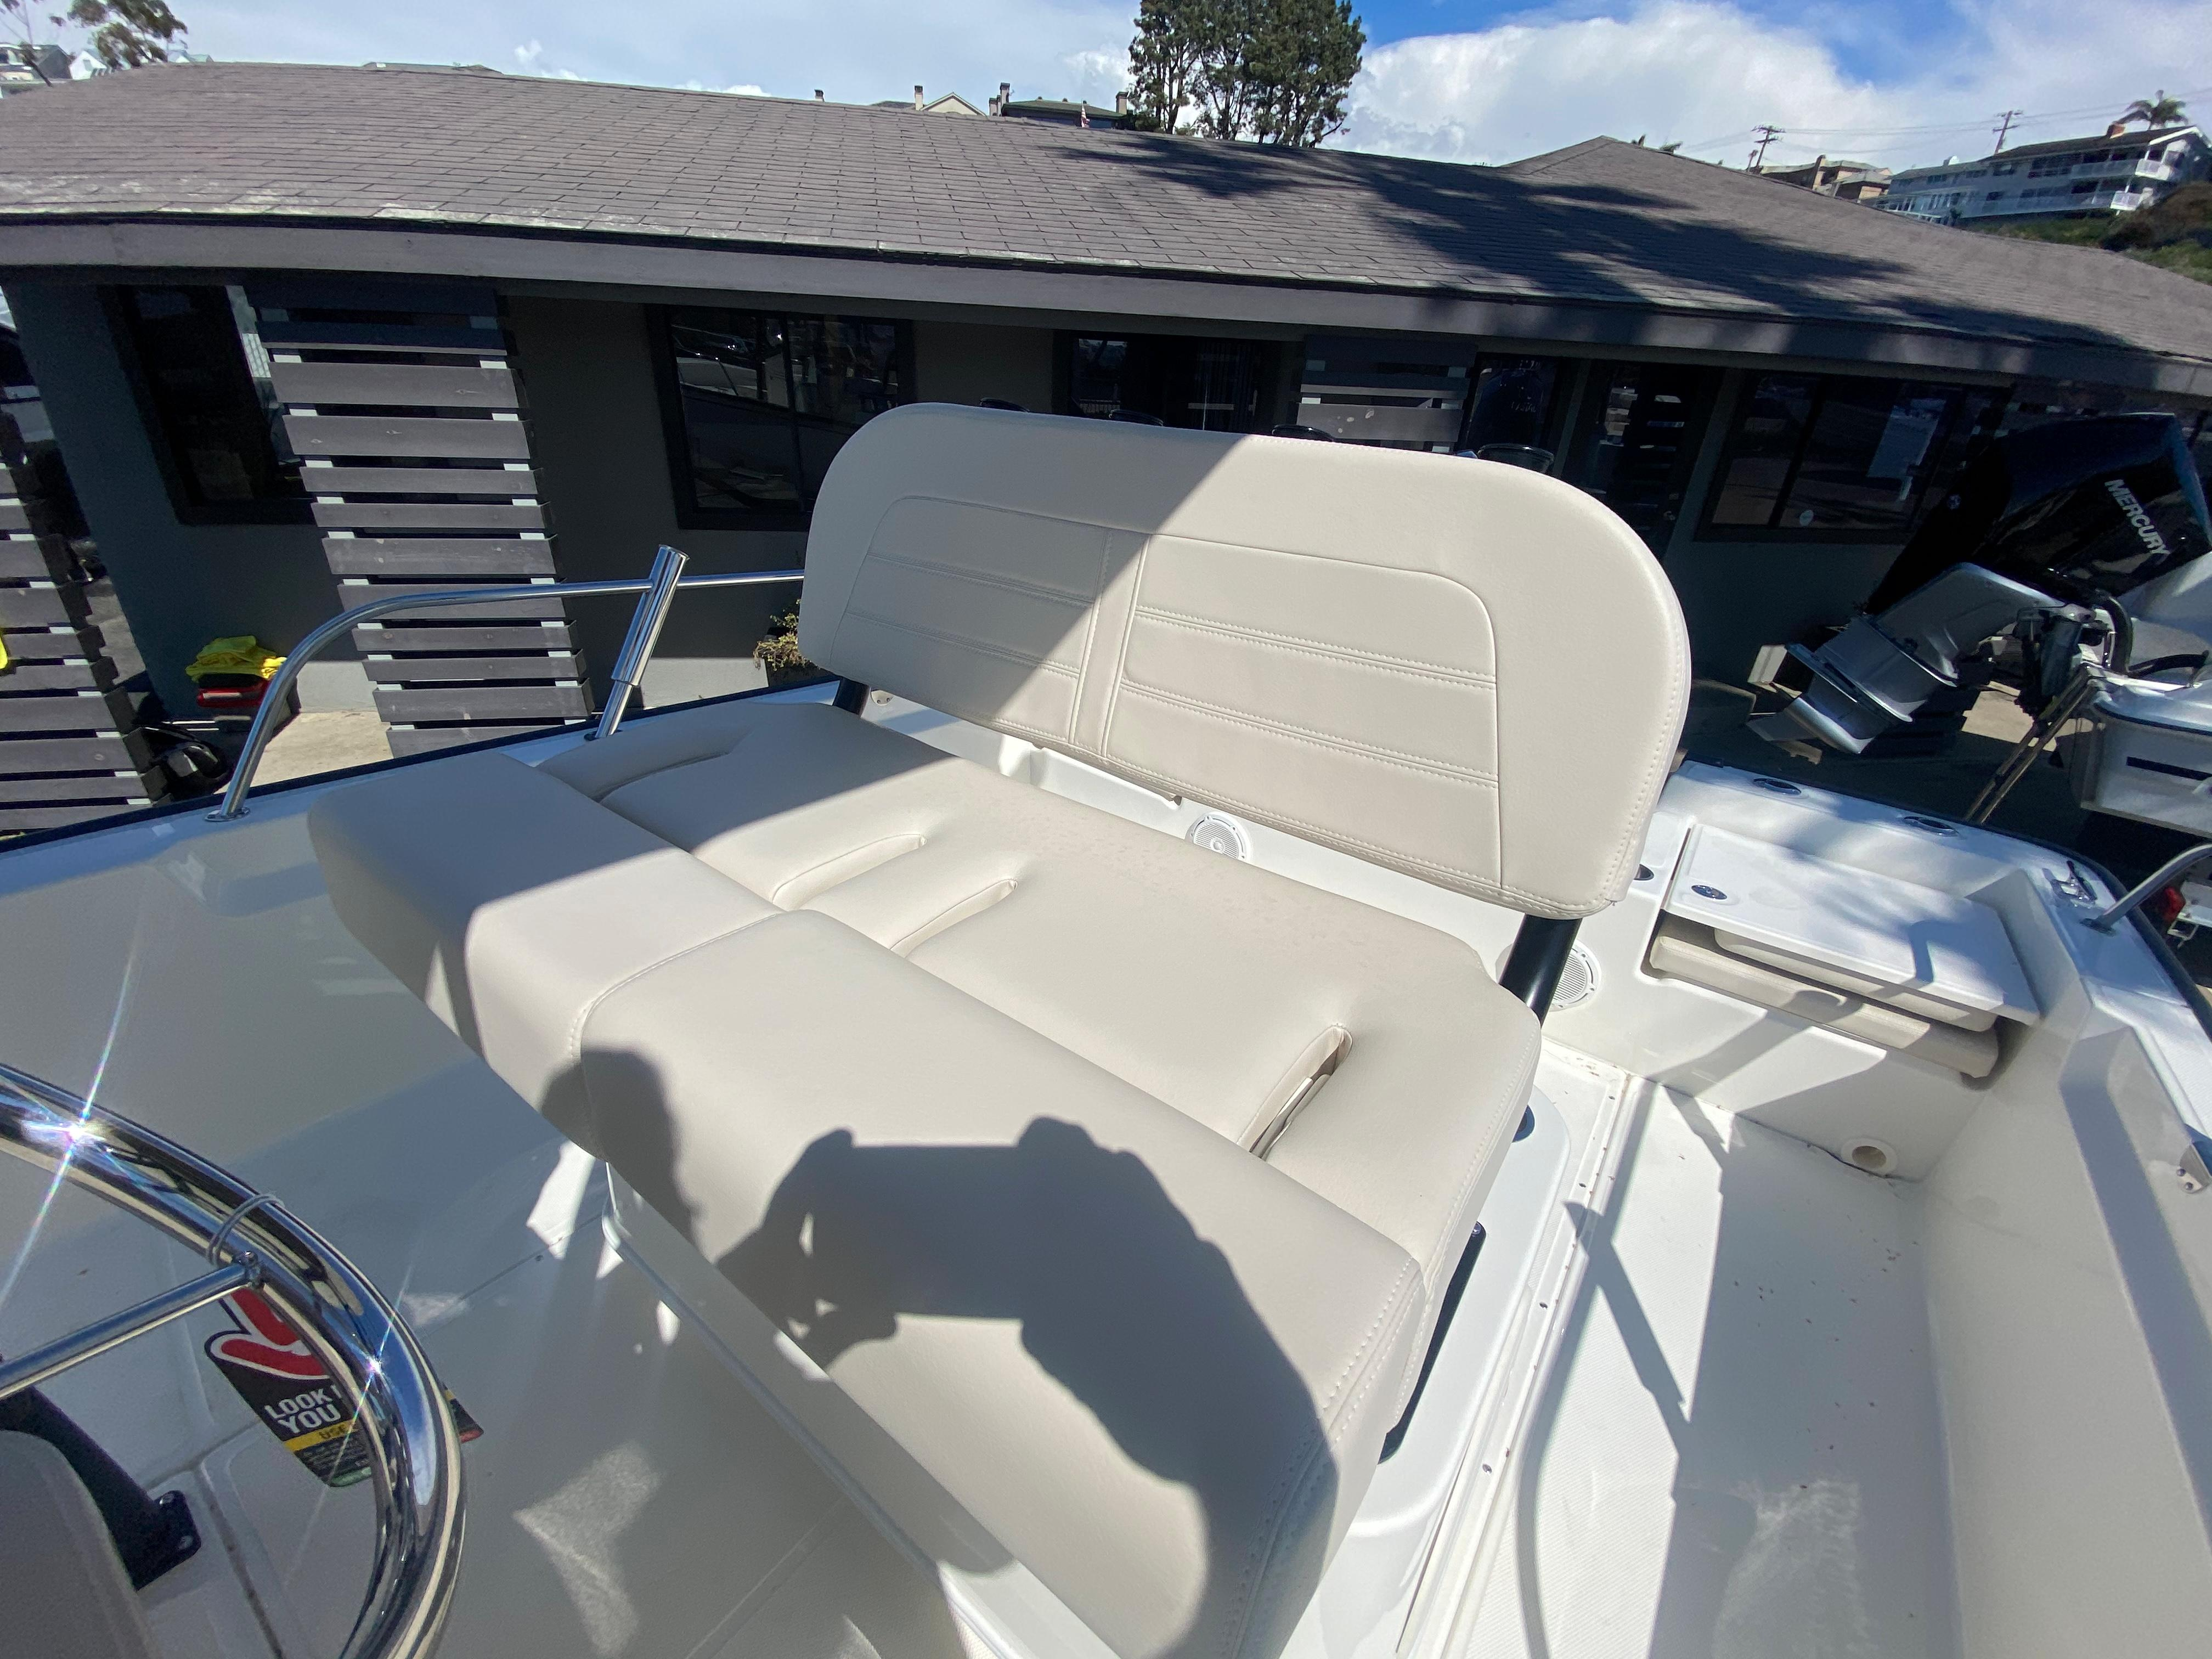 2021 Boston Whaler 210 Montauk #BW1852B inventory image at Sun Country Inland in Irvine